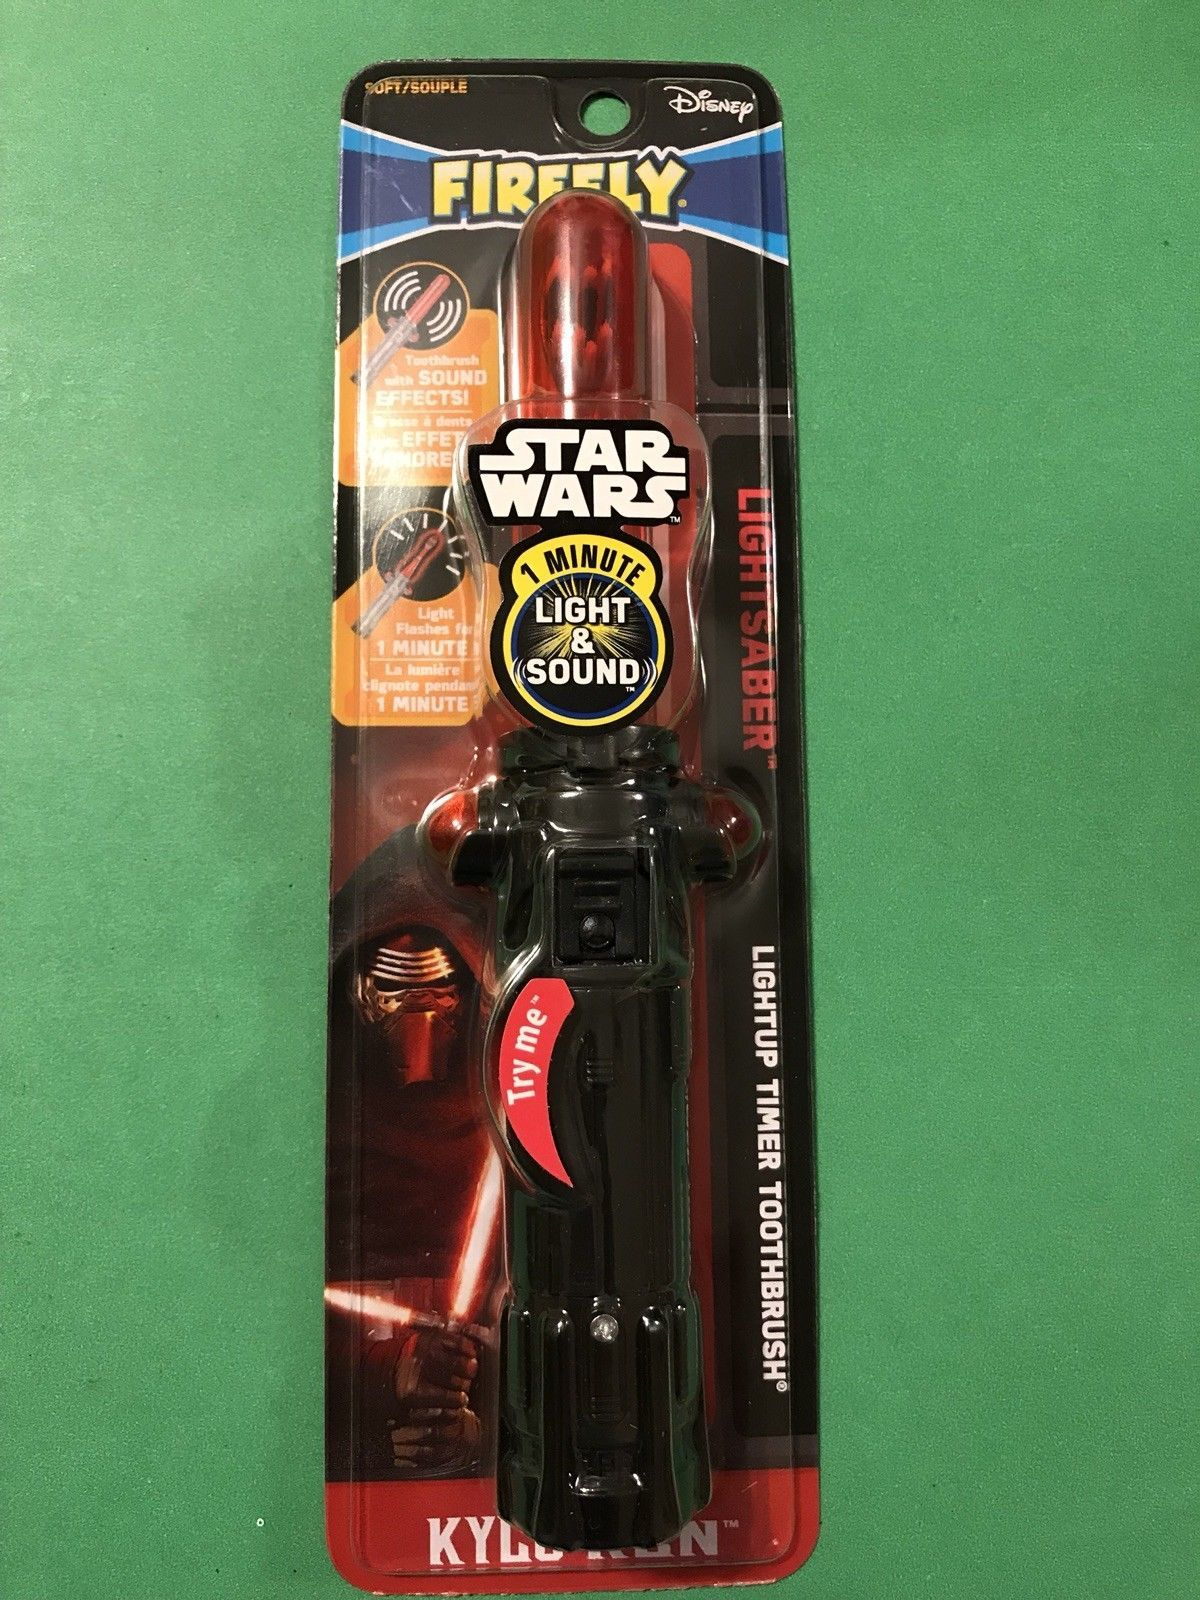 firefly toothbrush star wars darth vader 1 minute timer 3 pack